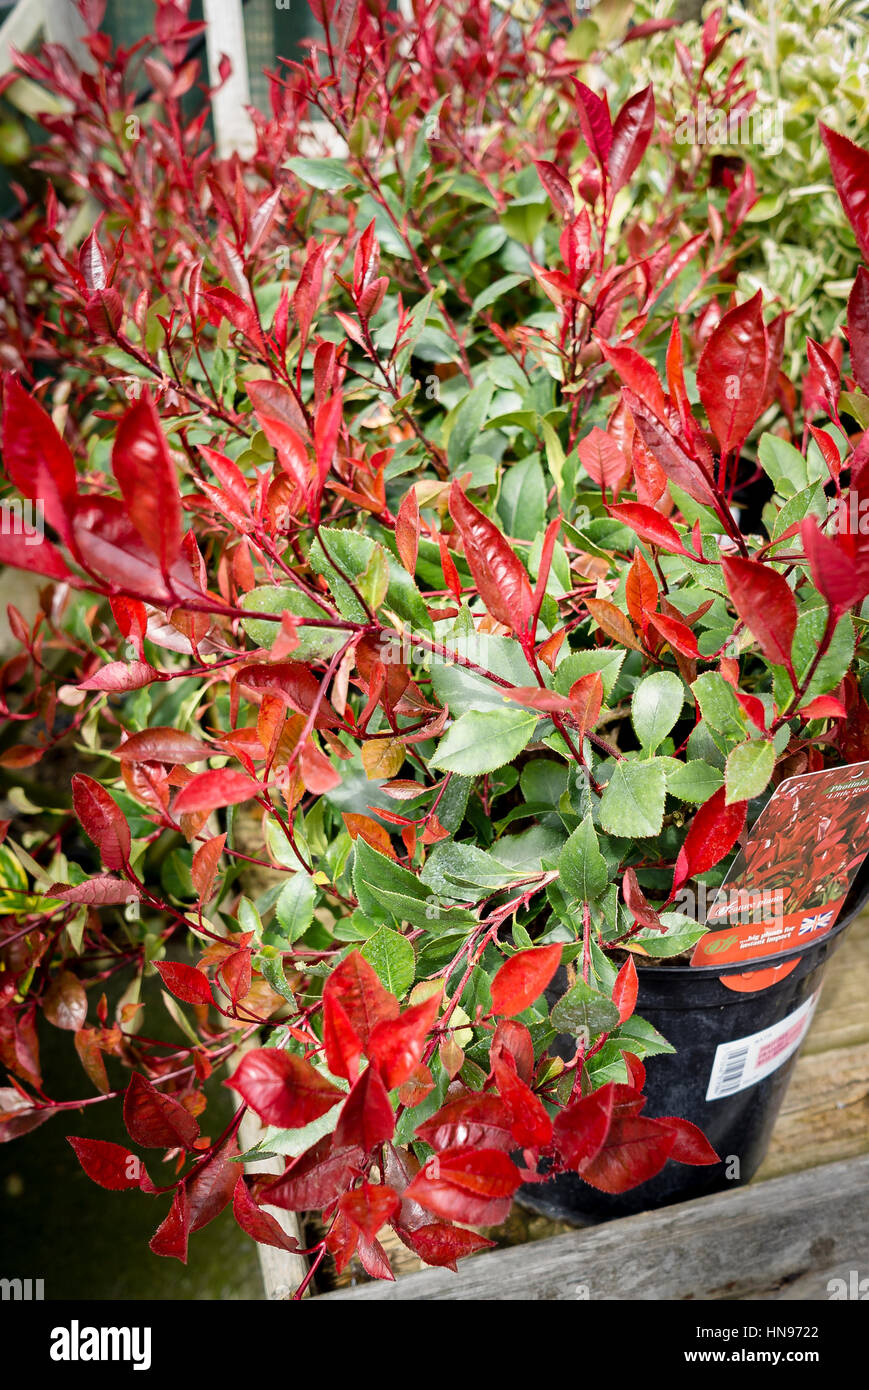 Photinia x fraseri Little Red Robin in a 7.5L pot for sale in a garden centred - Stock Image